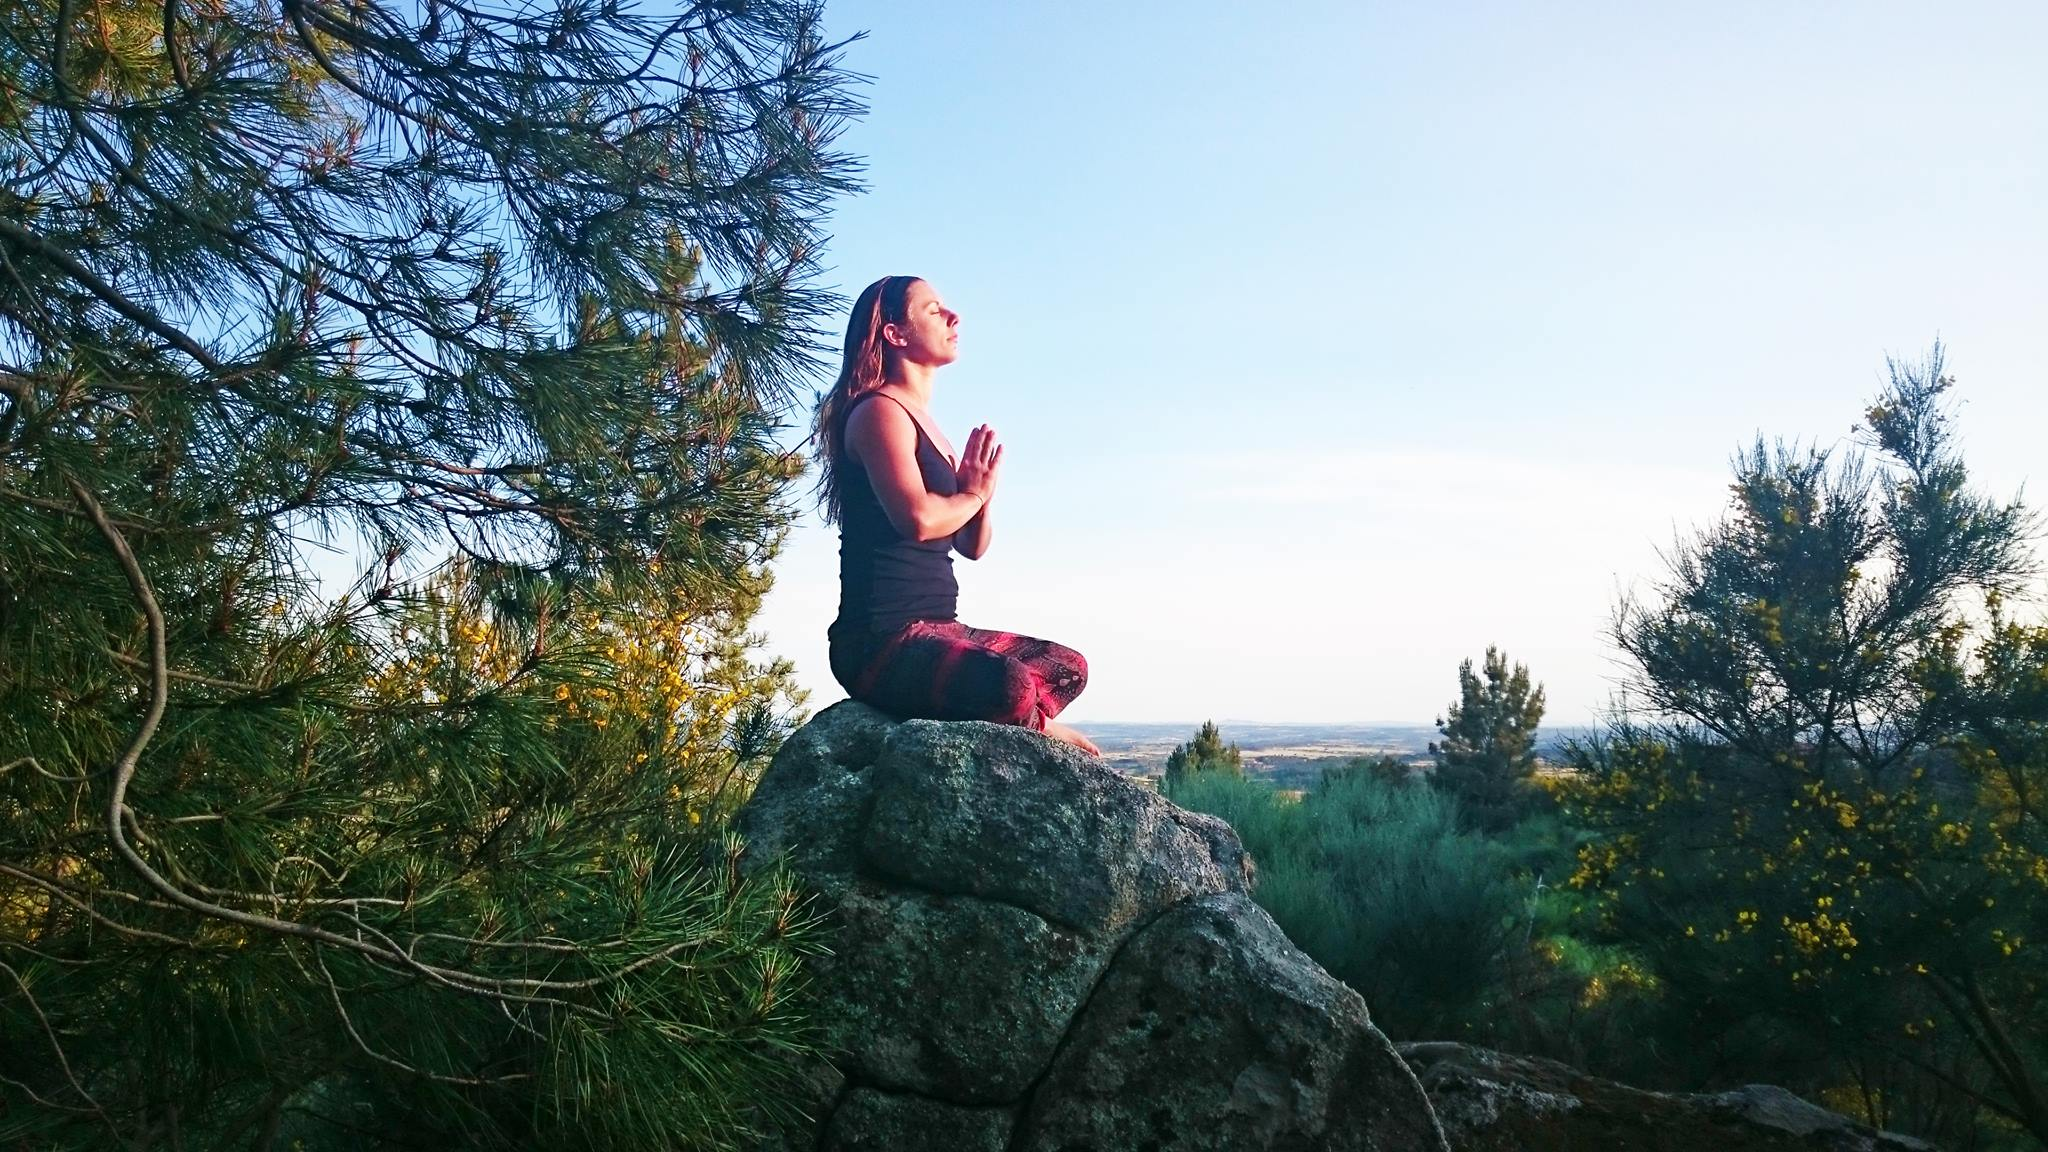 (Photo taken on retreat with the Merkaba community, Portugal (the closest to kundalini I could find!)